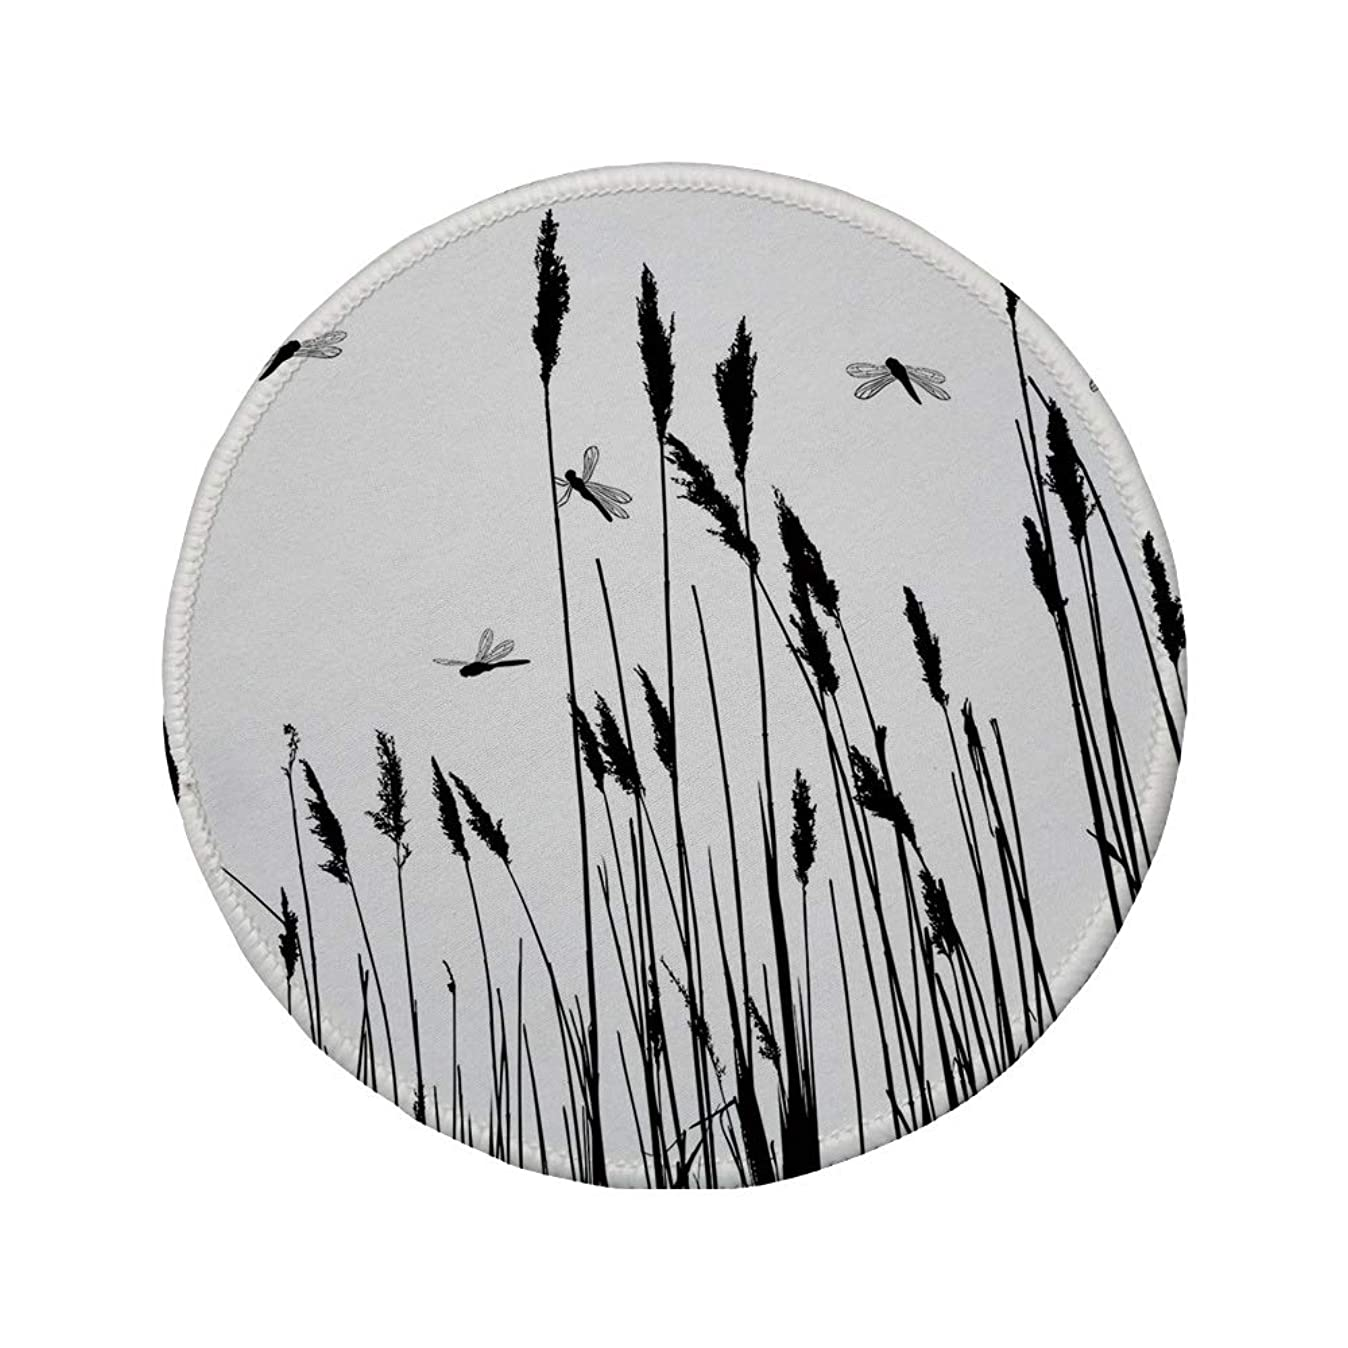 Non-Slip Rubber Round Mouse Pad,Dragonfly,Wheat Field Autumn Agriculture Background Nature Harvest Bush Herbs Theme Art Decorative,Black White,11.8